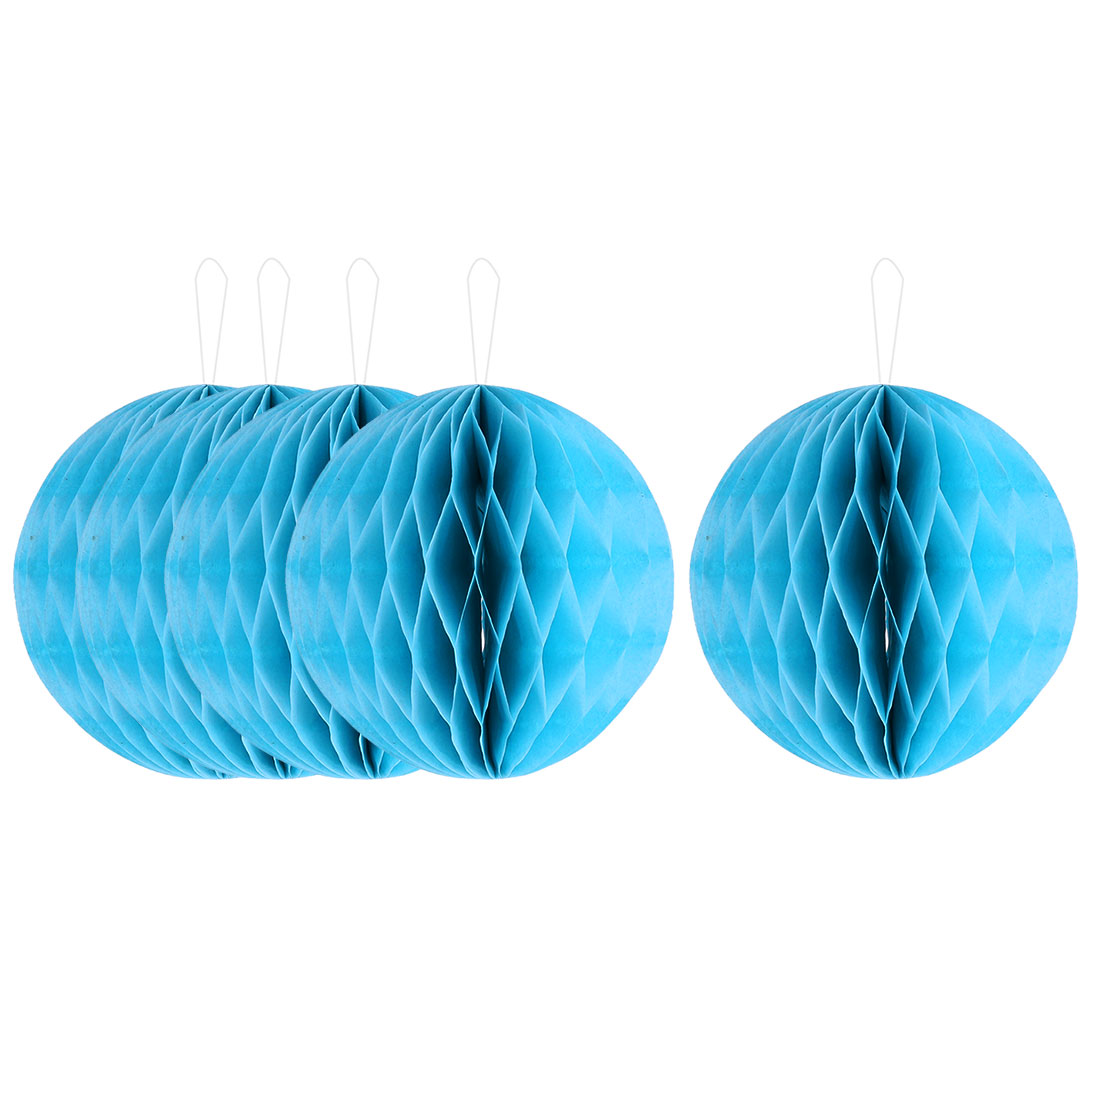 Household Party Paper Wall Window Door DIY Decoration Honeycomb Ball Blue 4 Inch Dia 5 Pcs